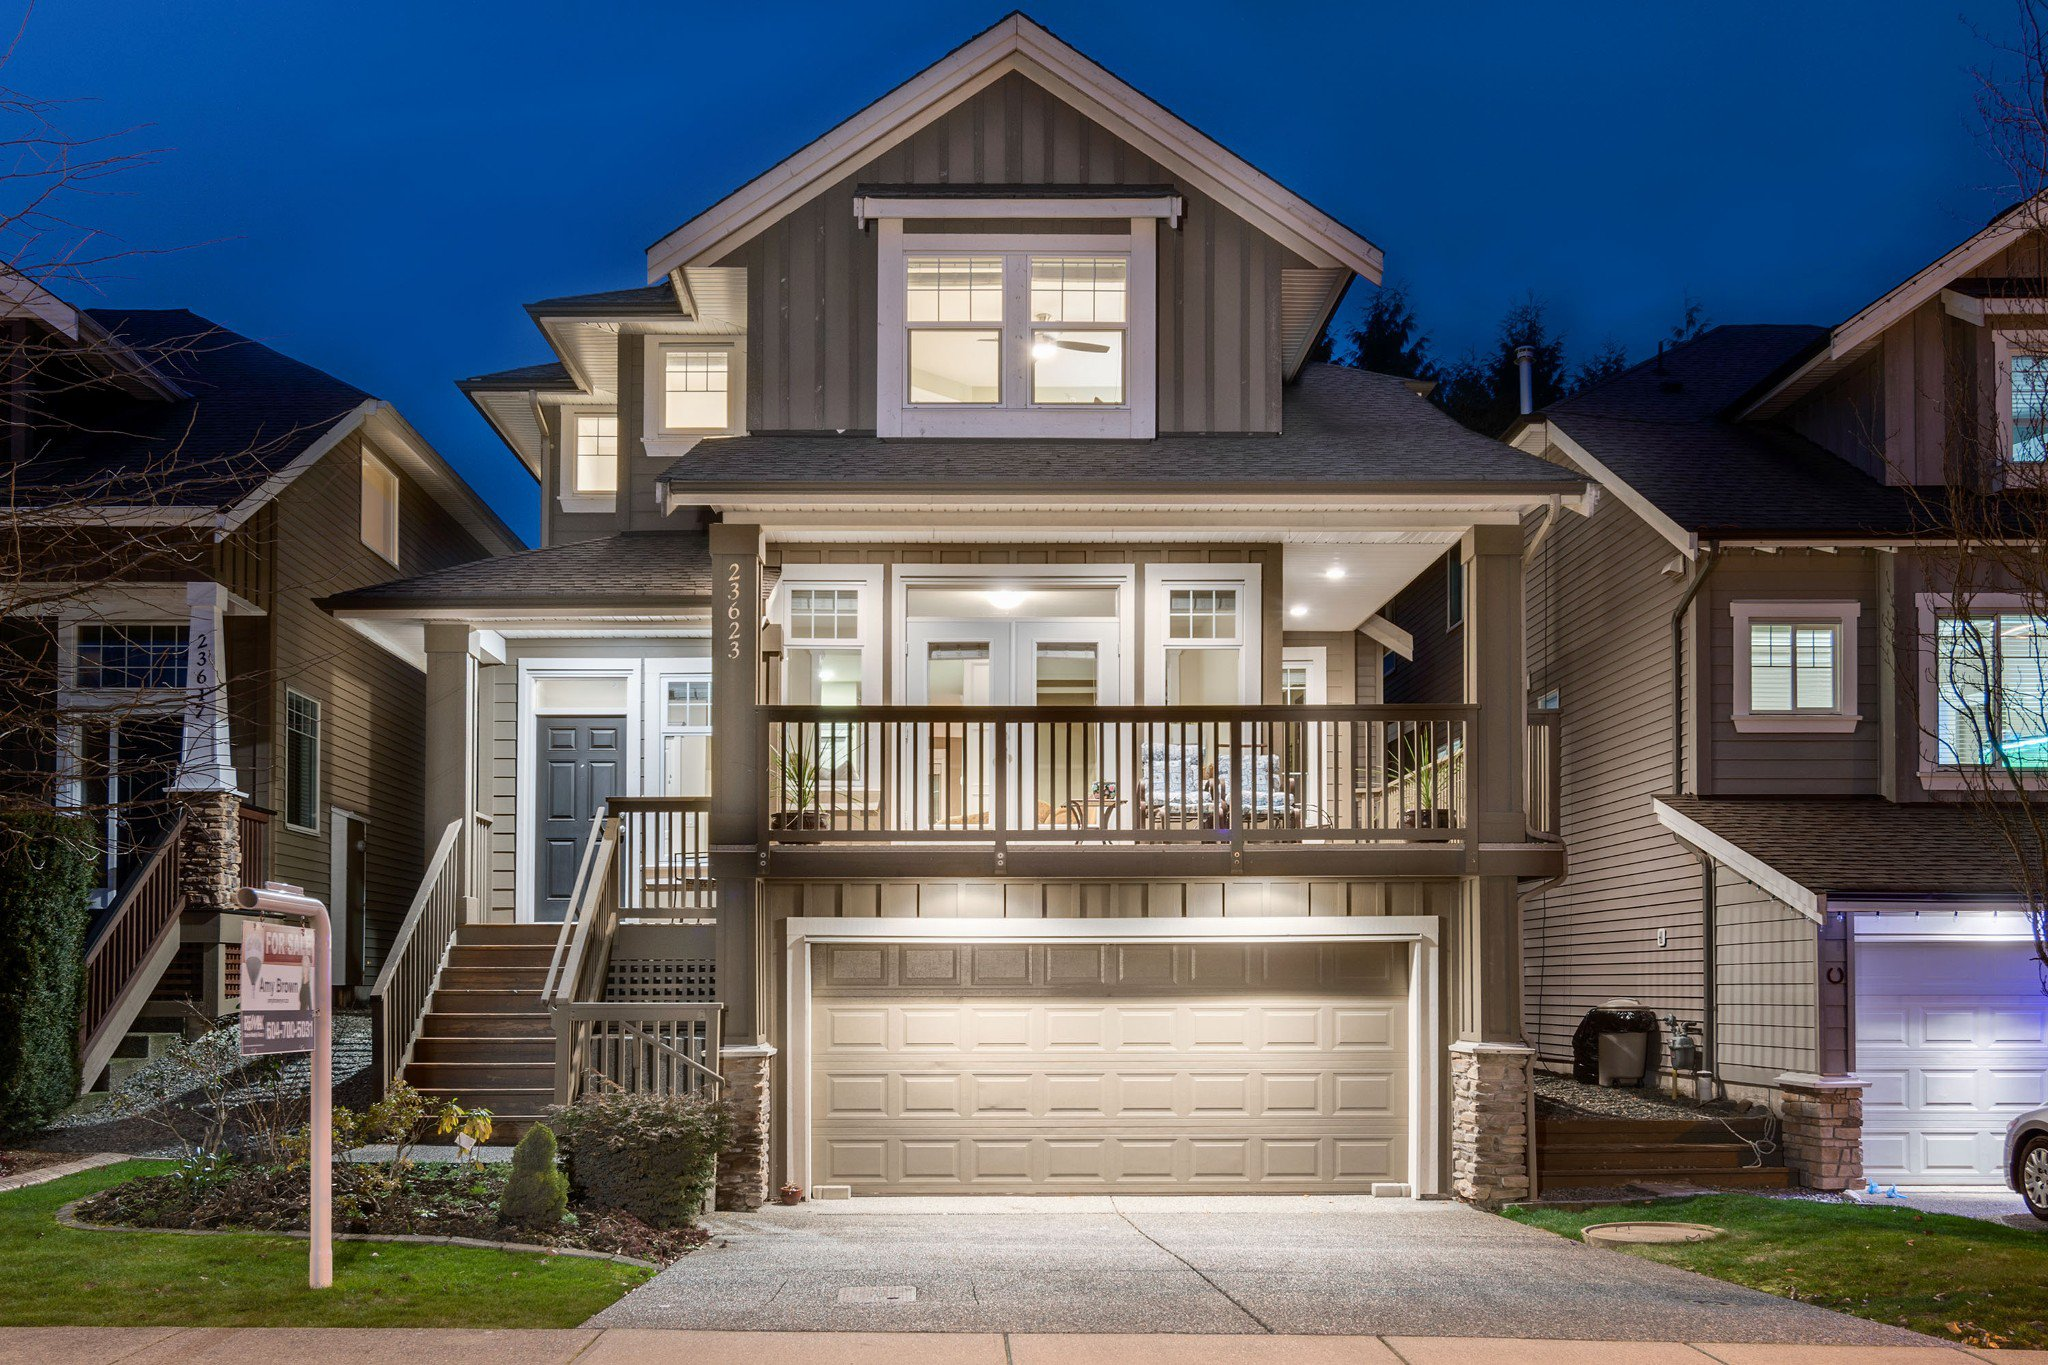 Main Photo: 23623 112A Avenue in Maple Ridge: Cottonwood MR House for sale : MLS®# R2240411